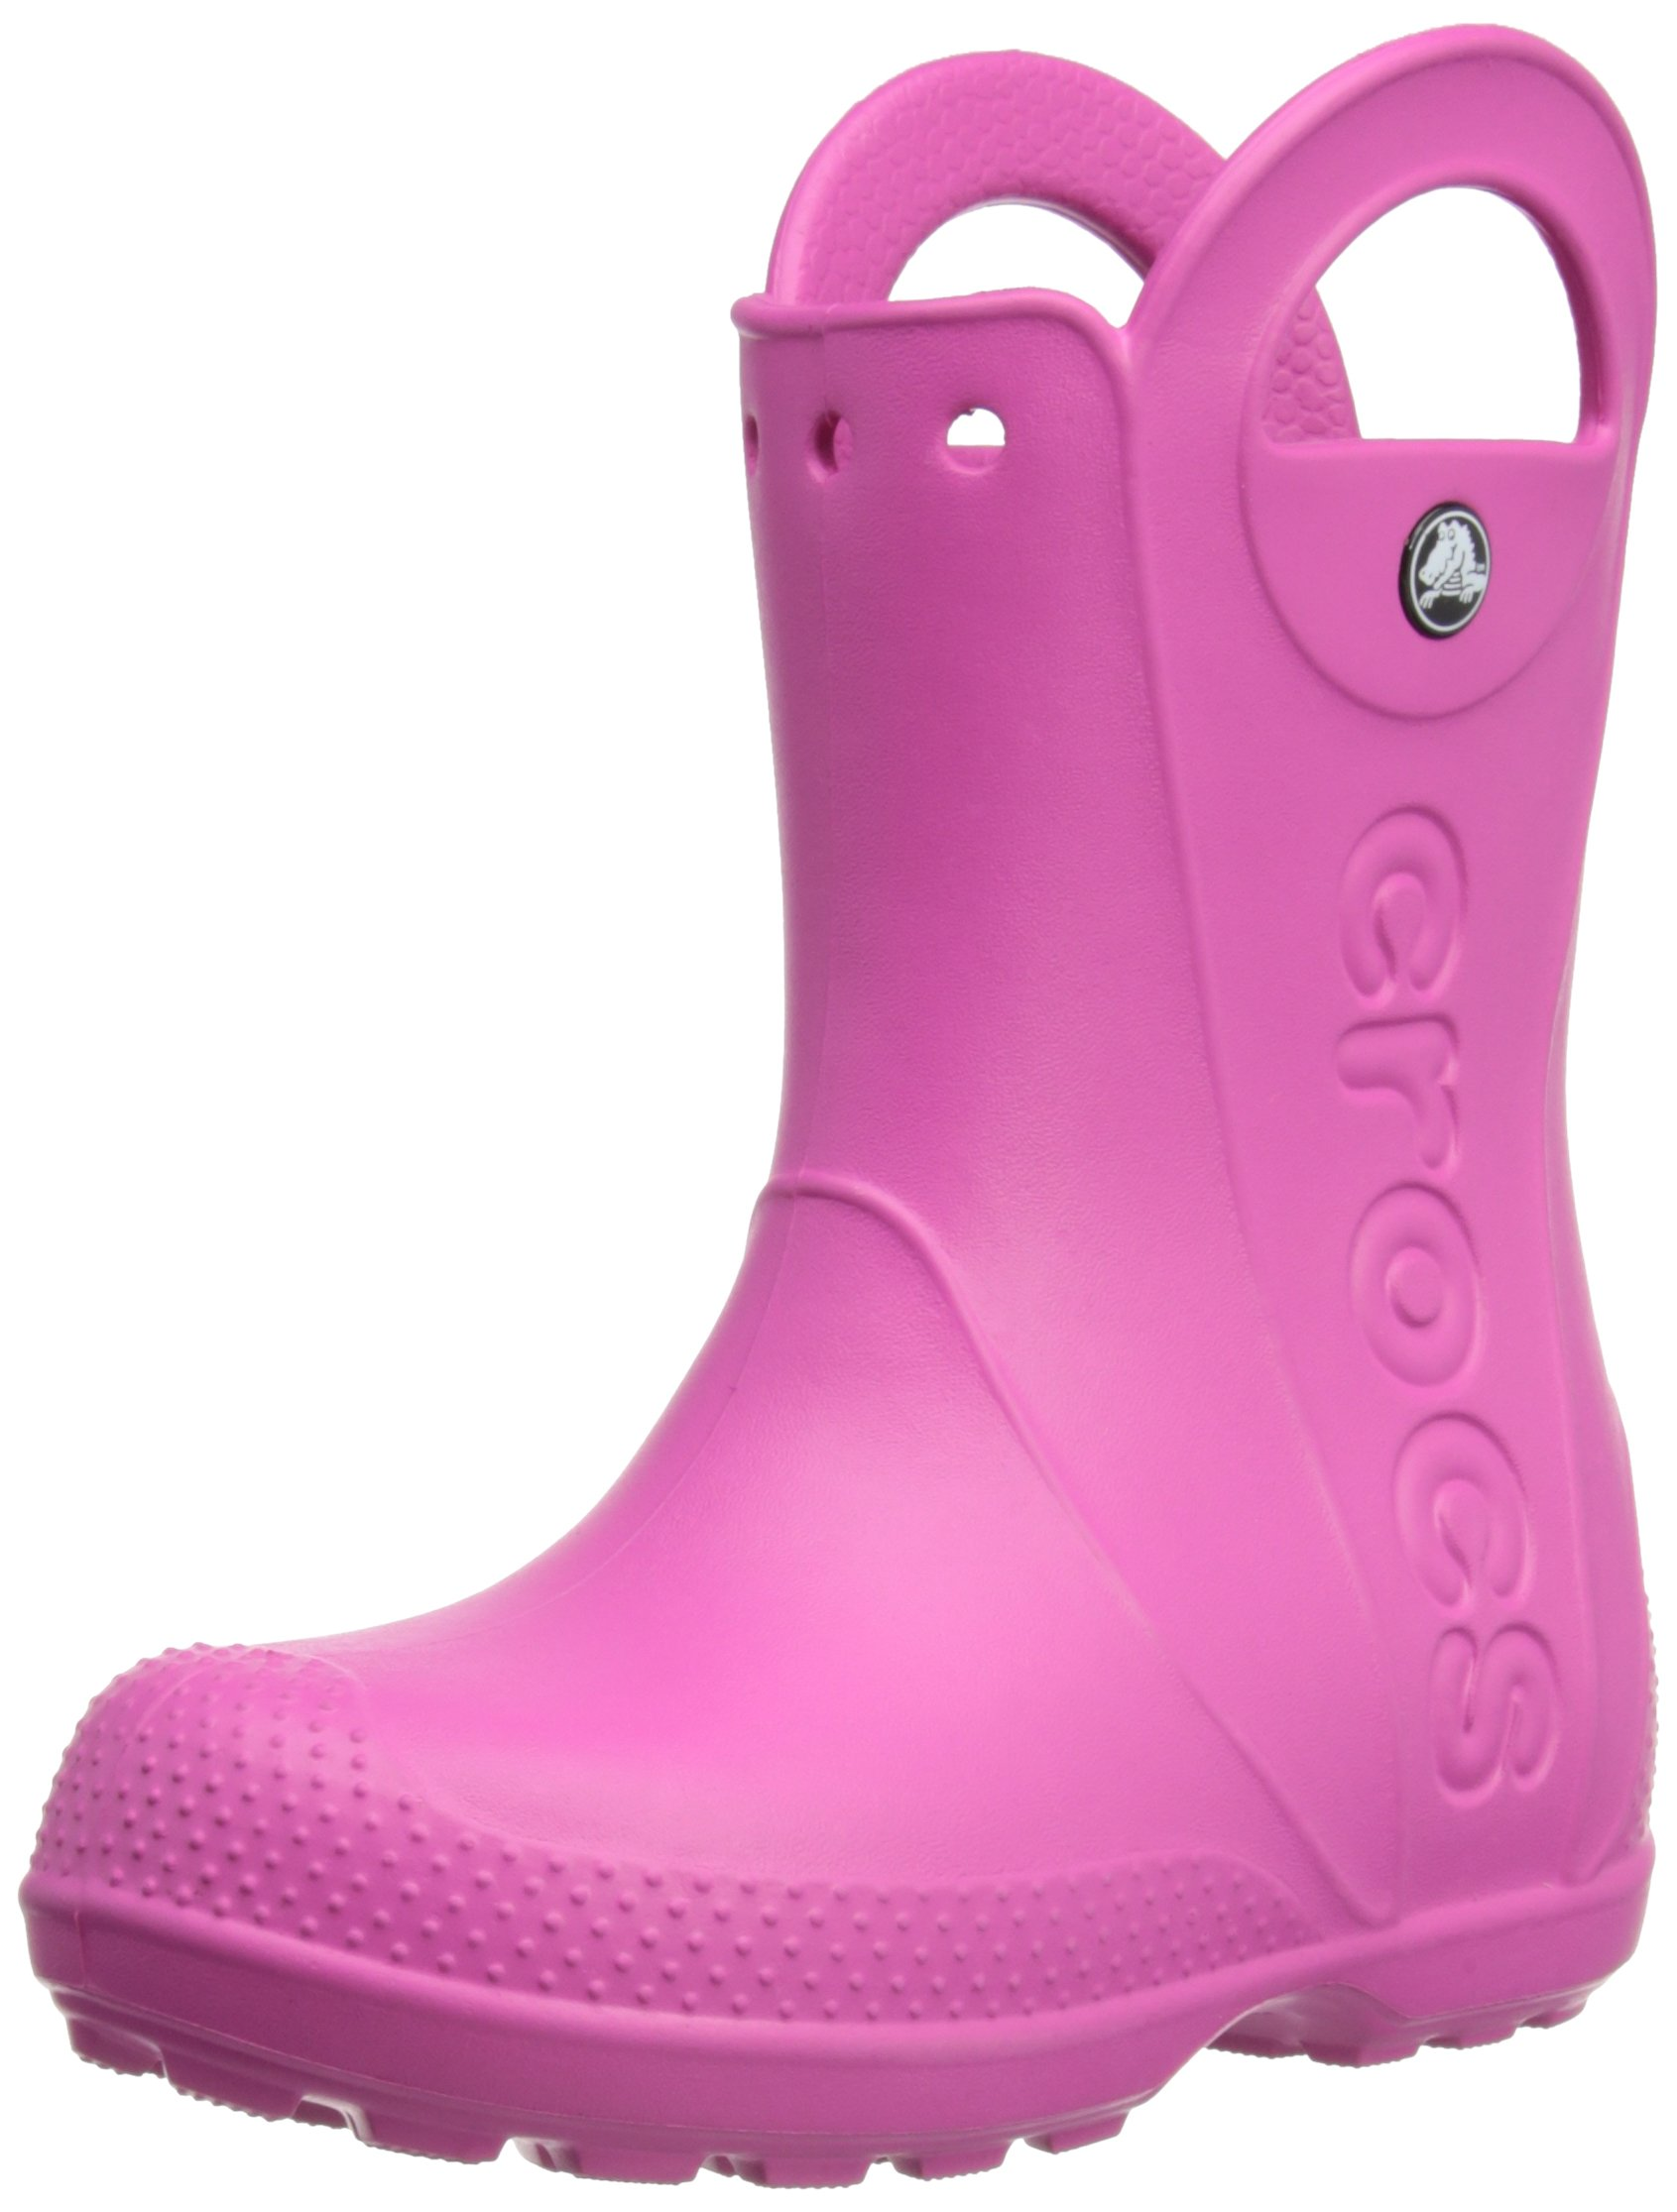 Crocs Kids' Handle It Boot,Fuchsia,1 M US Little Kid by Crocs